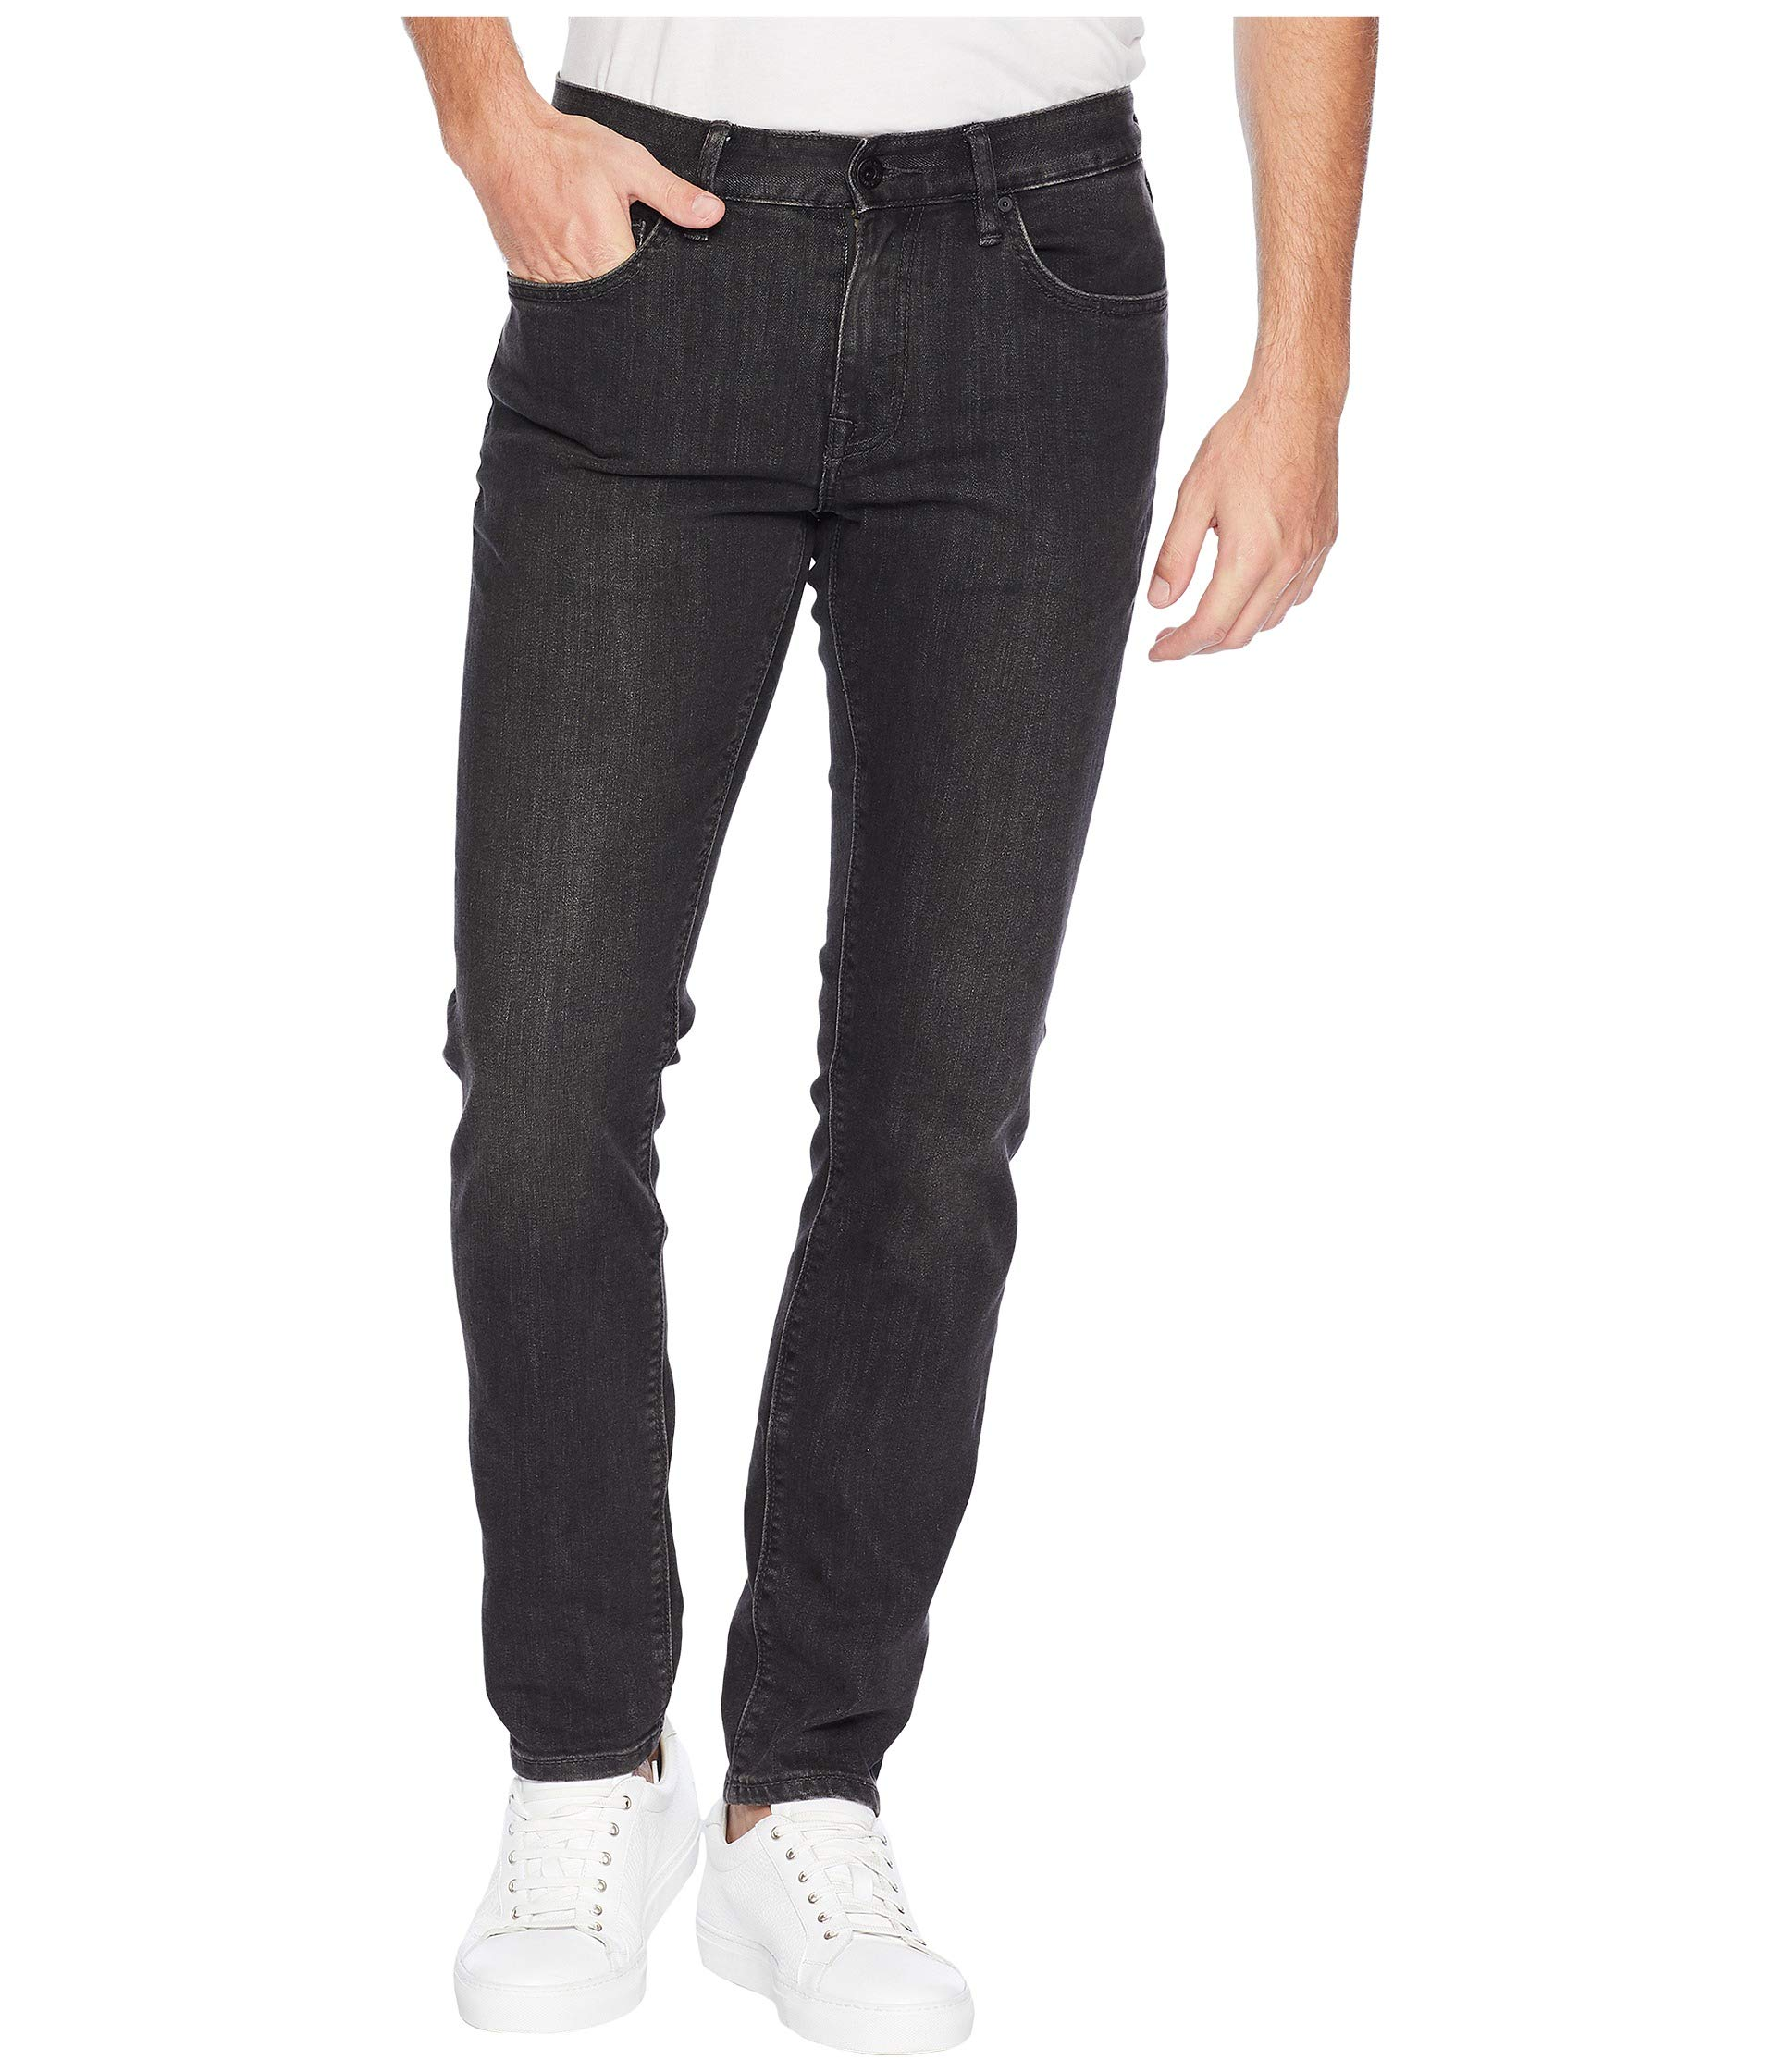 Black Roark Jeans 133 In Worn Hwy wXrRXAq0